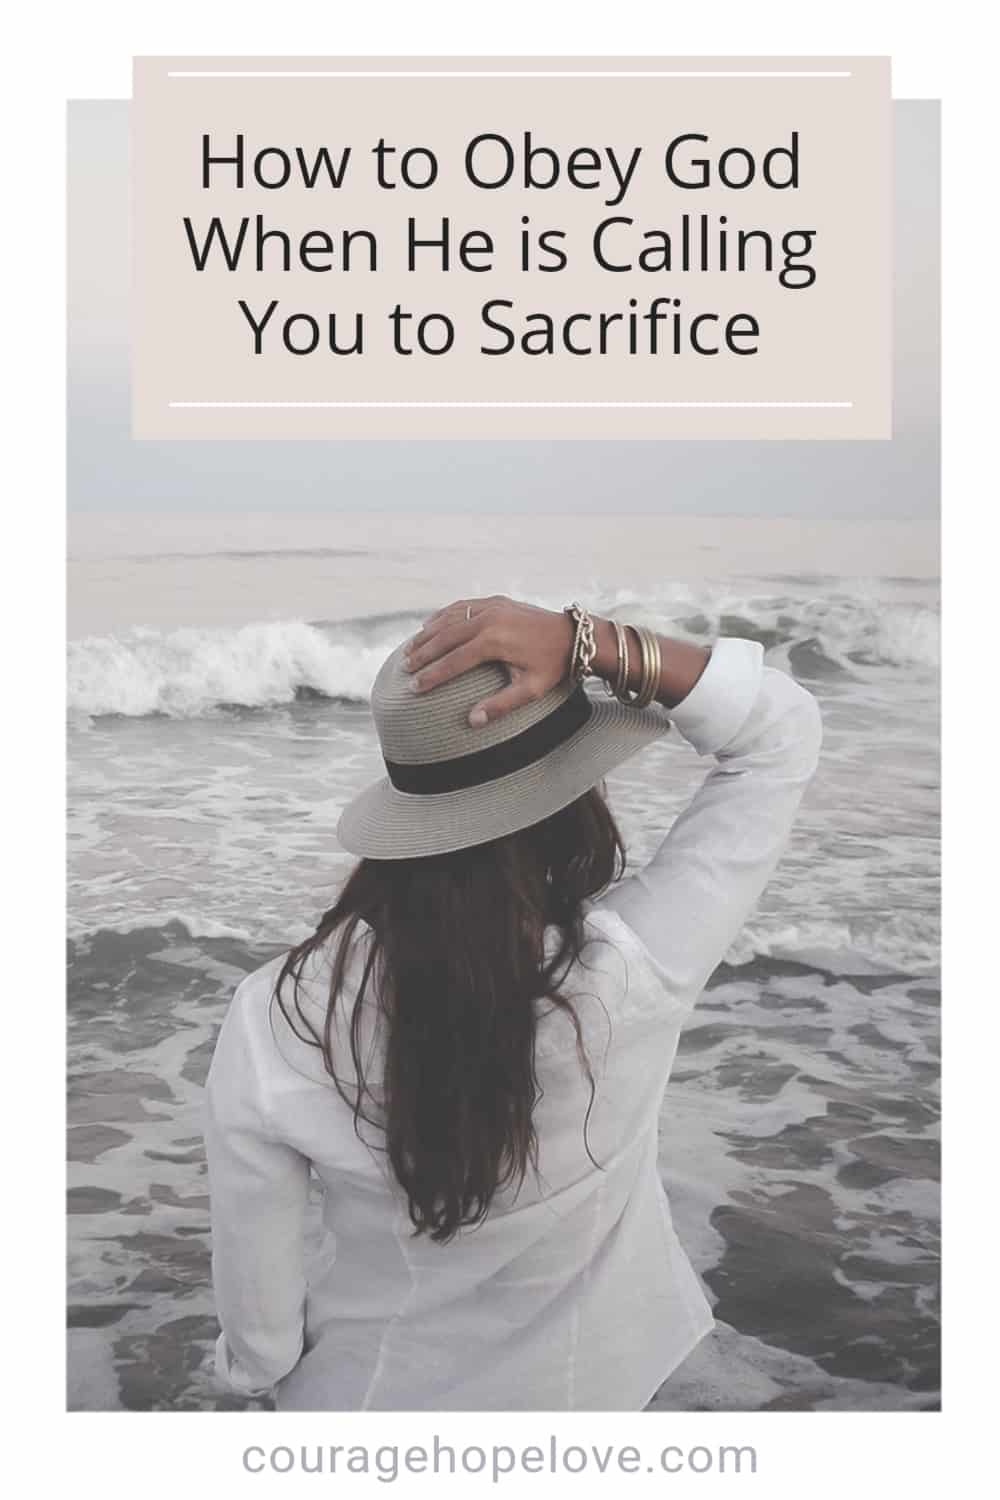 How-to-Obey-God-When-He-is-Calling-You-to-Sacrifice